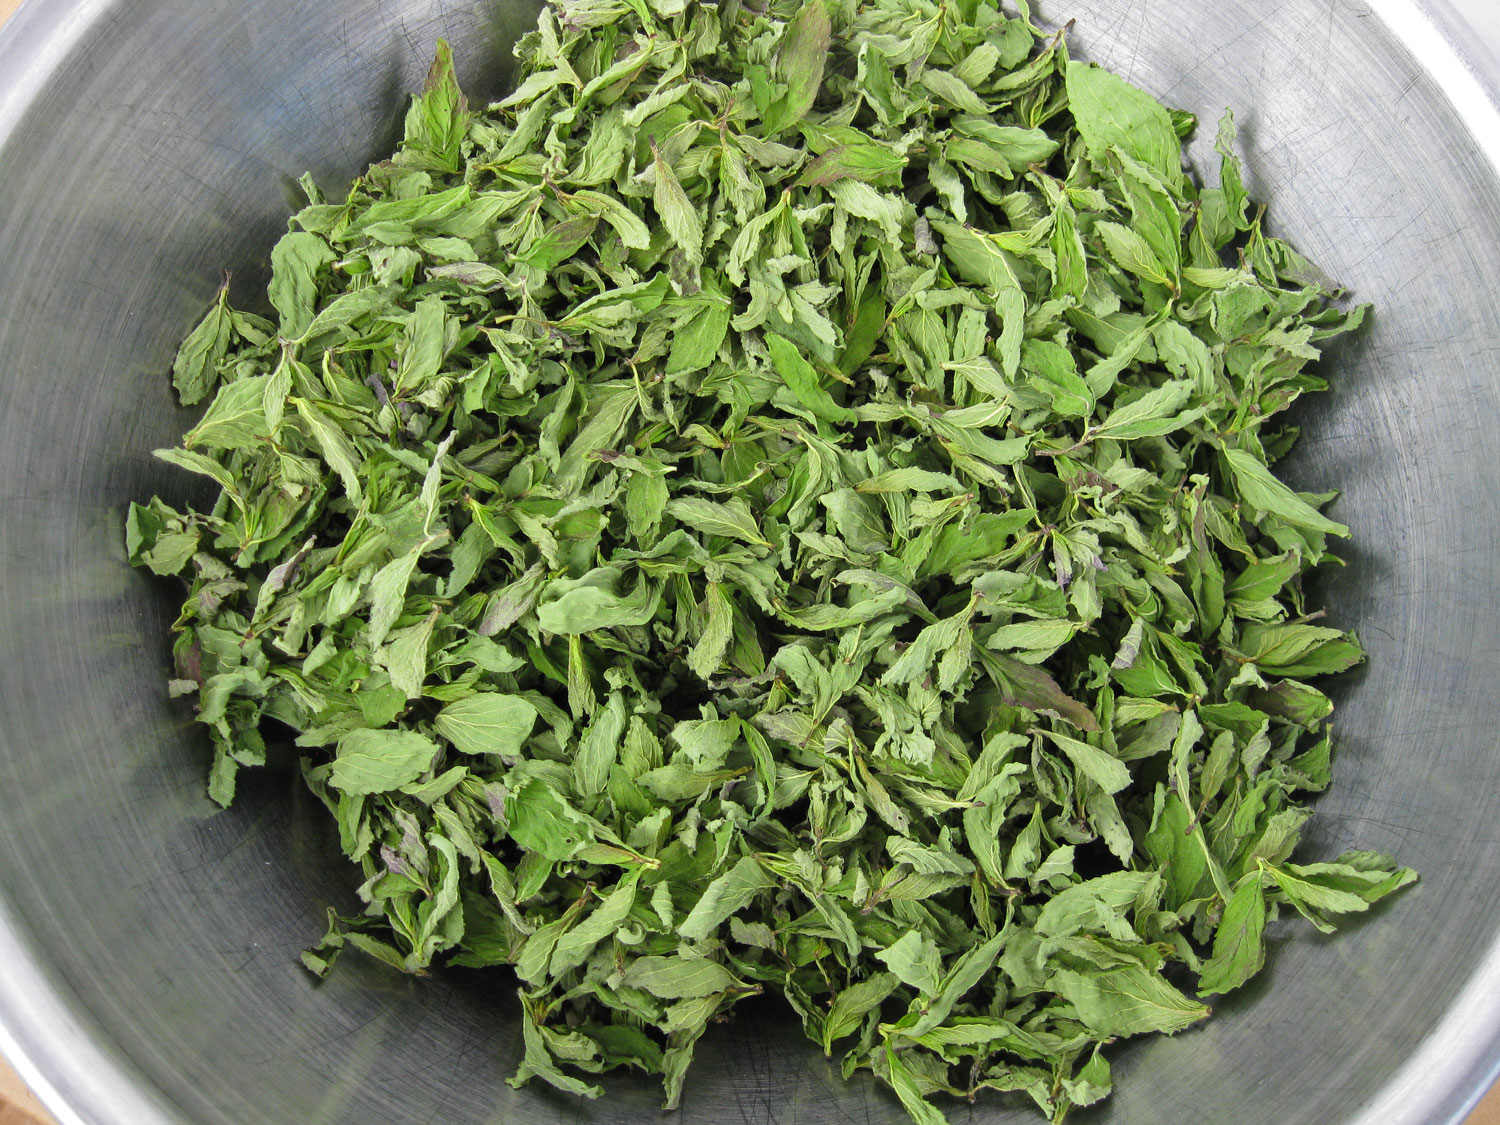 If the mint is handled well and dried quickly then it will retain some of the green color.